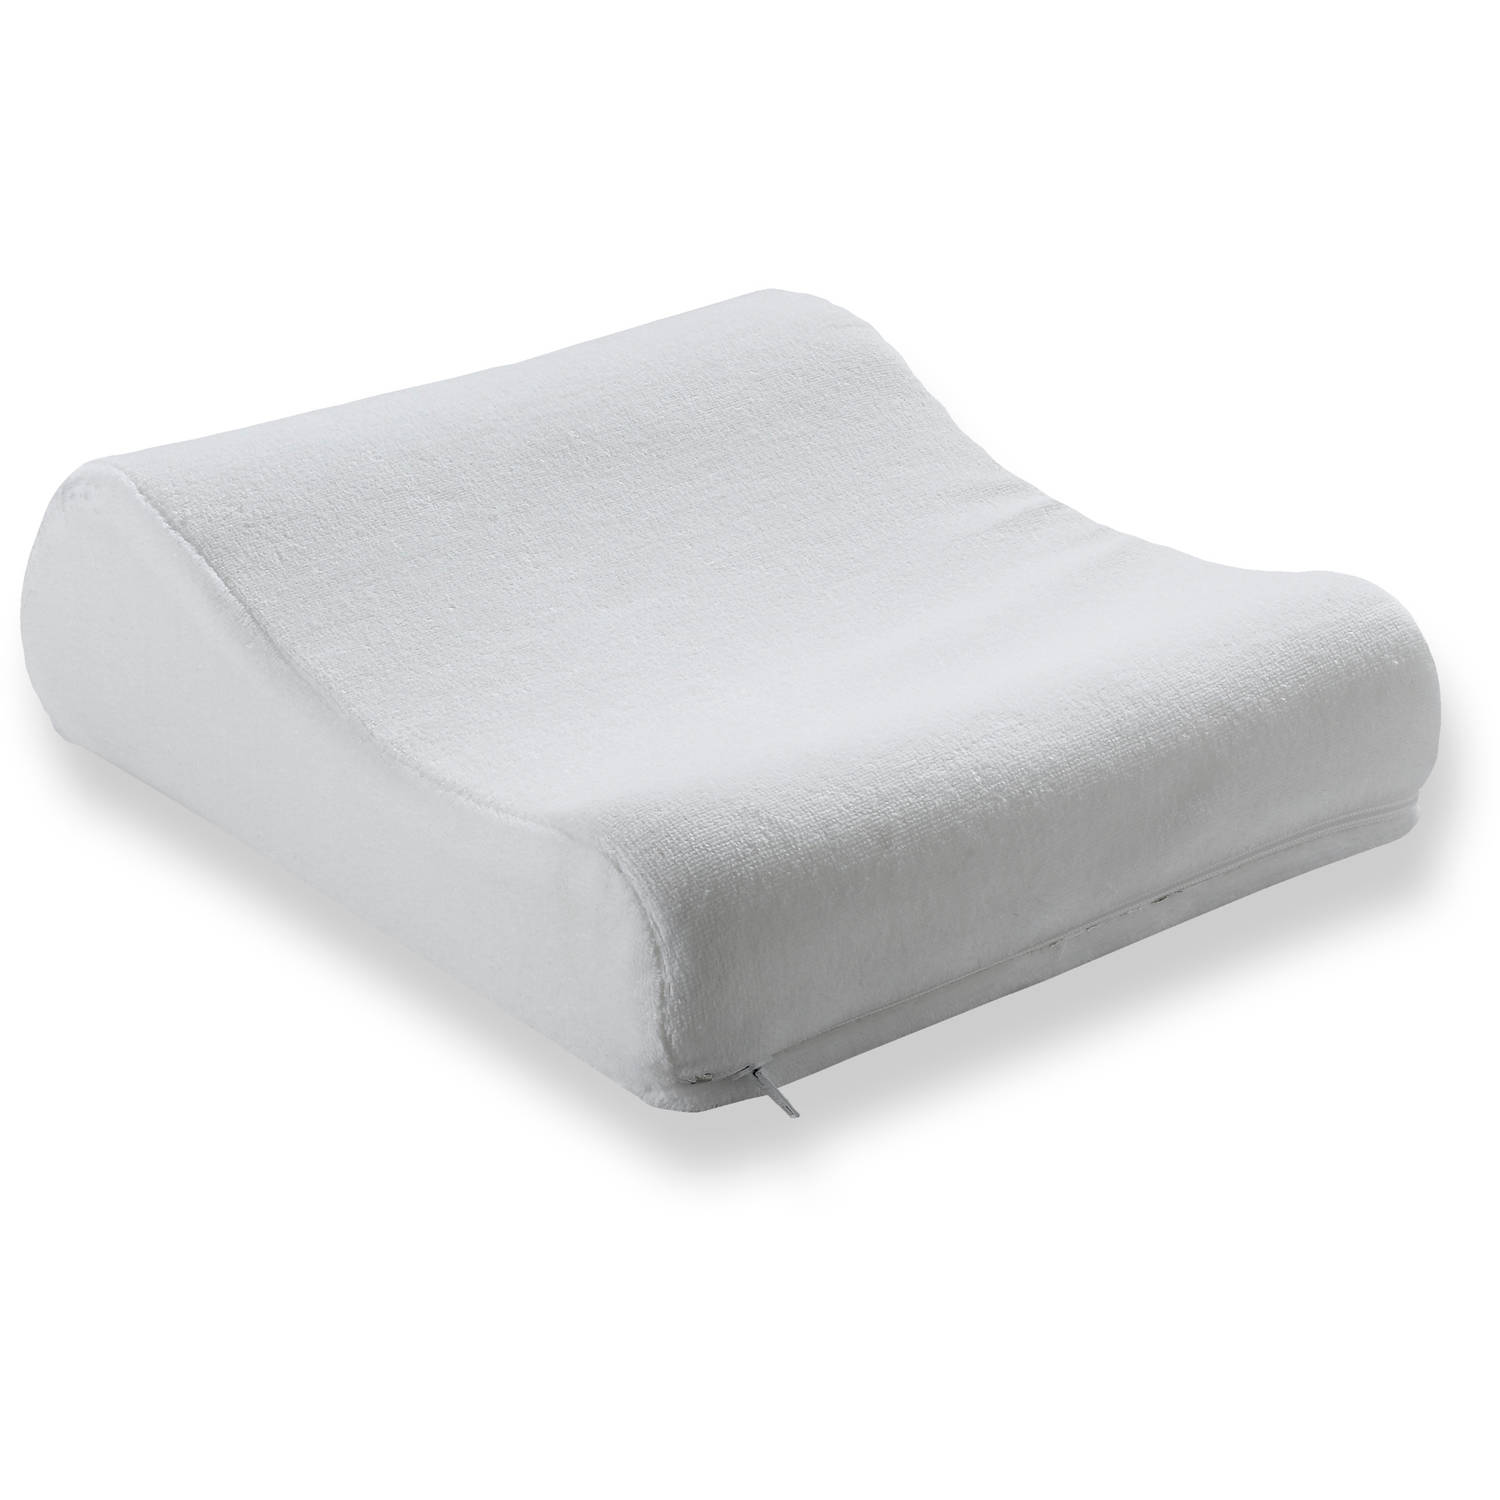 beautyrest lumbar memory foam pillow with removable cover walmartcom